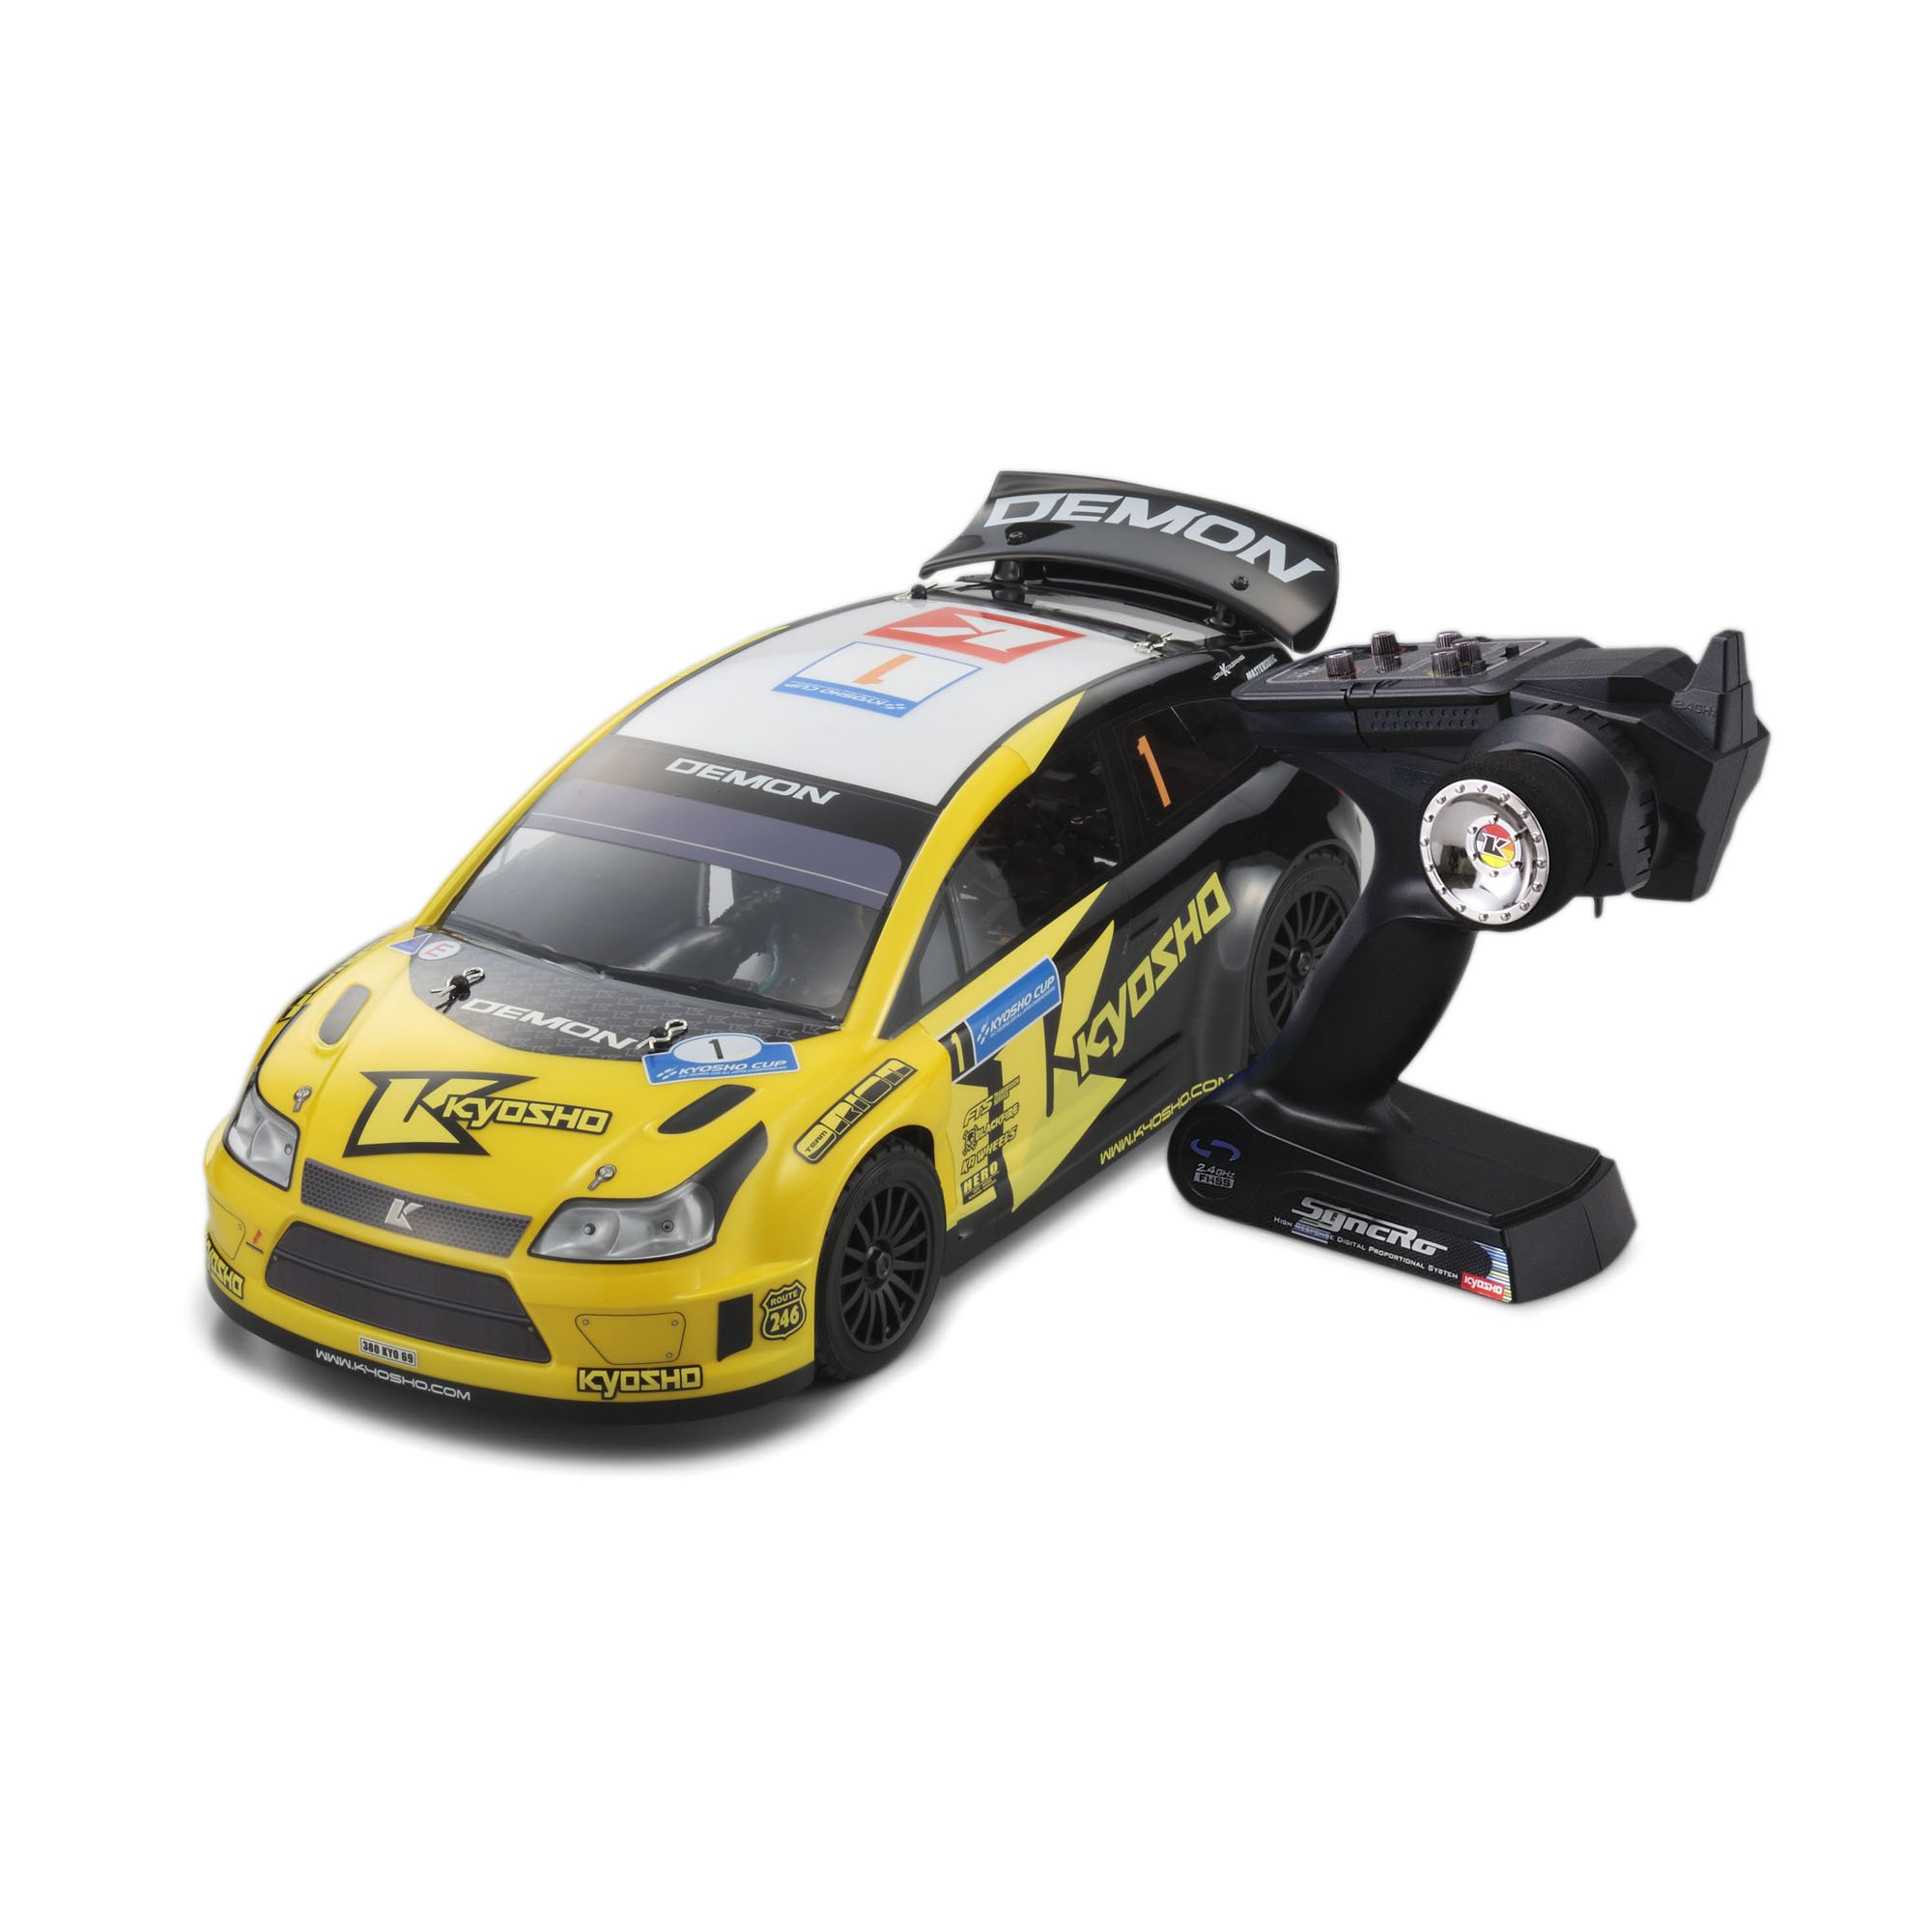 Kyosho EP 4WD R/S DRX Demon RC Car (1/9 Scale) with KT-201